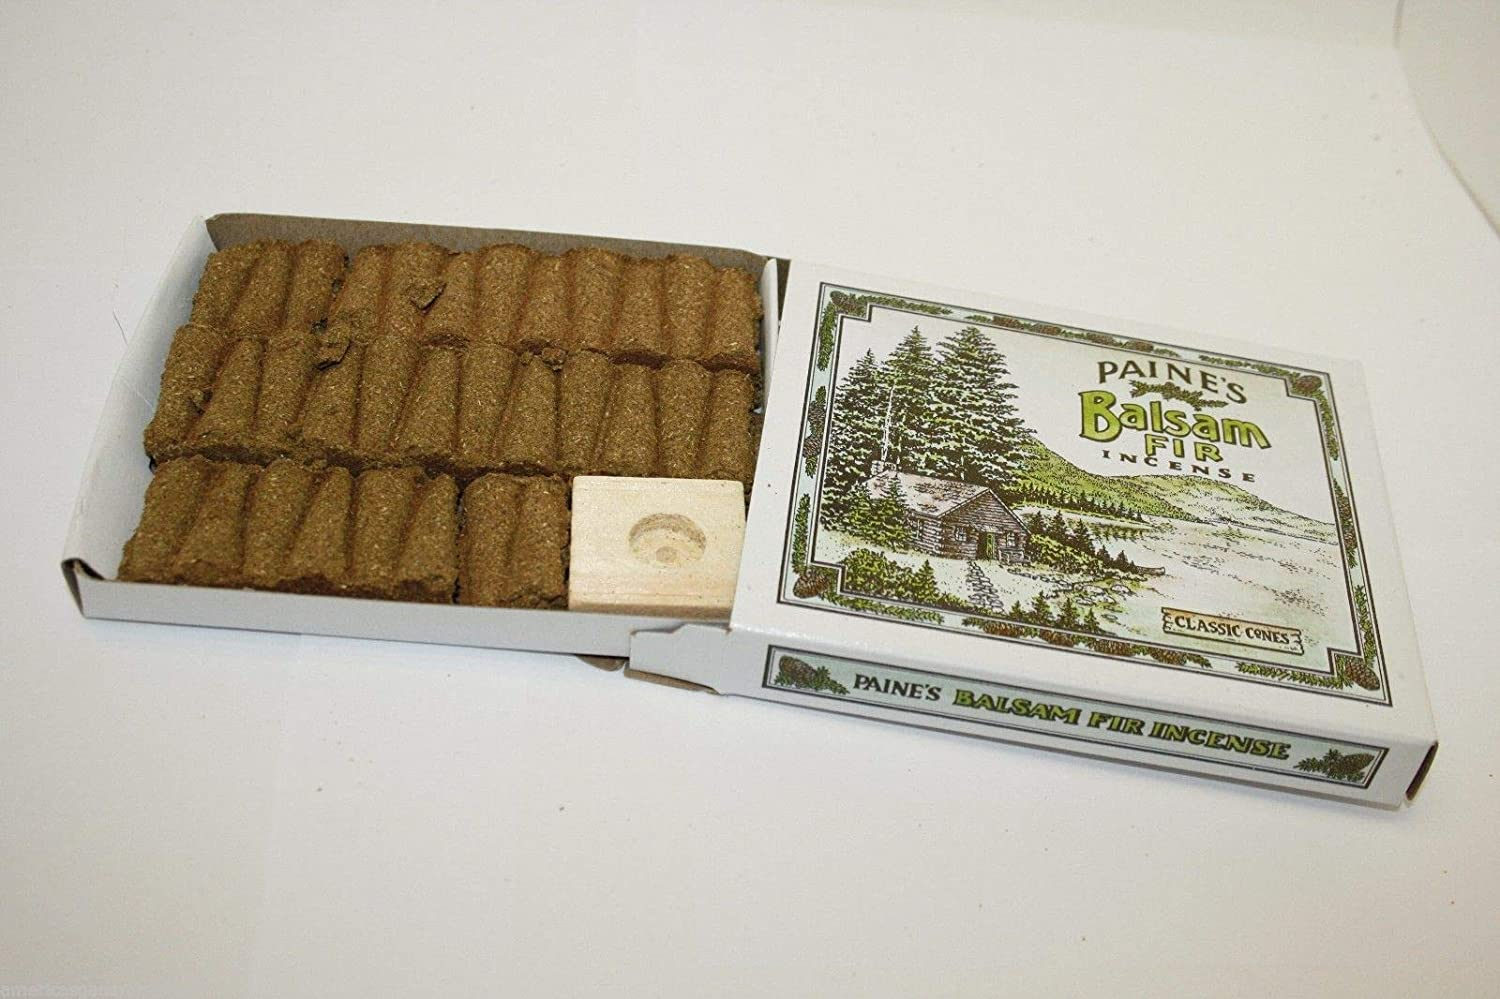 Paines Red Cedar Paine/'s Real Wood Incense Paine Products 32 Cones With Holder